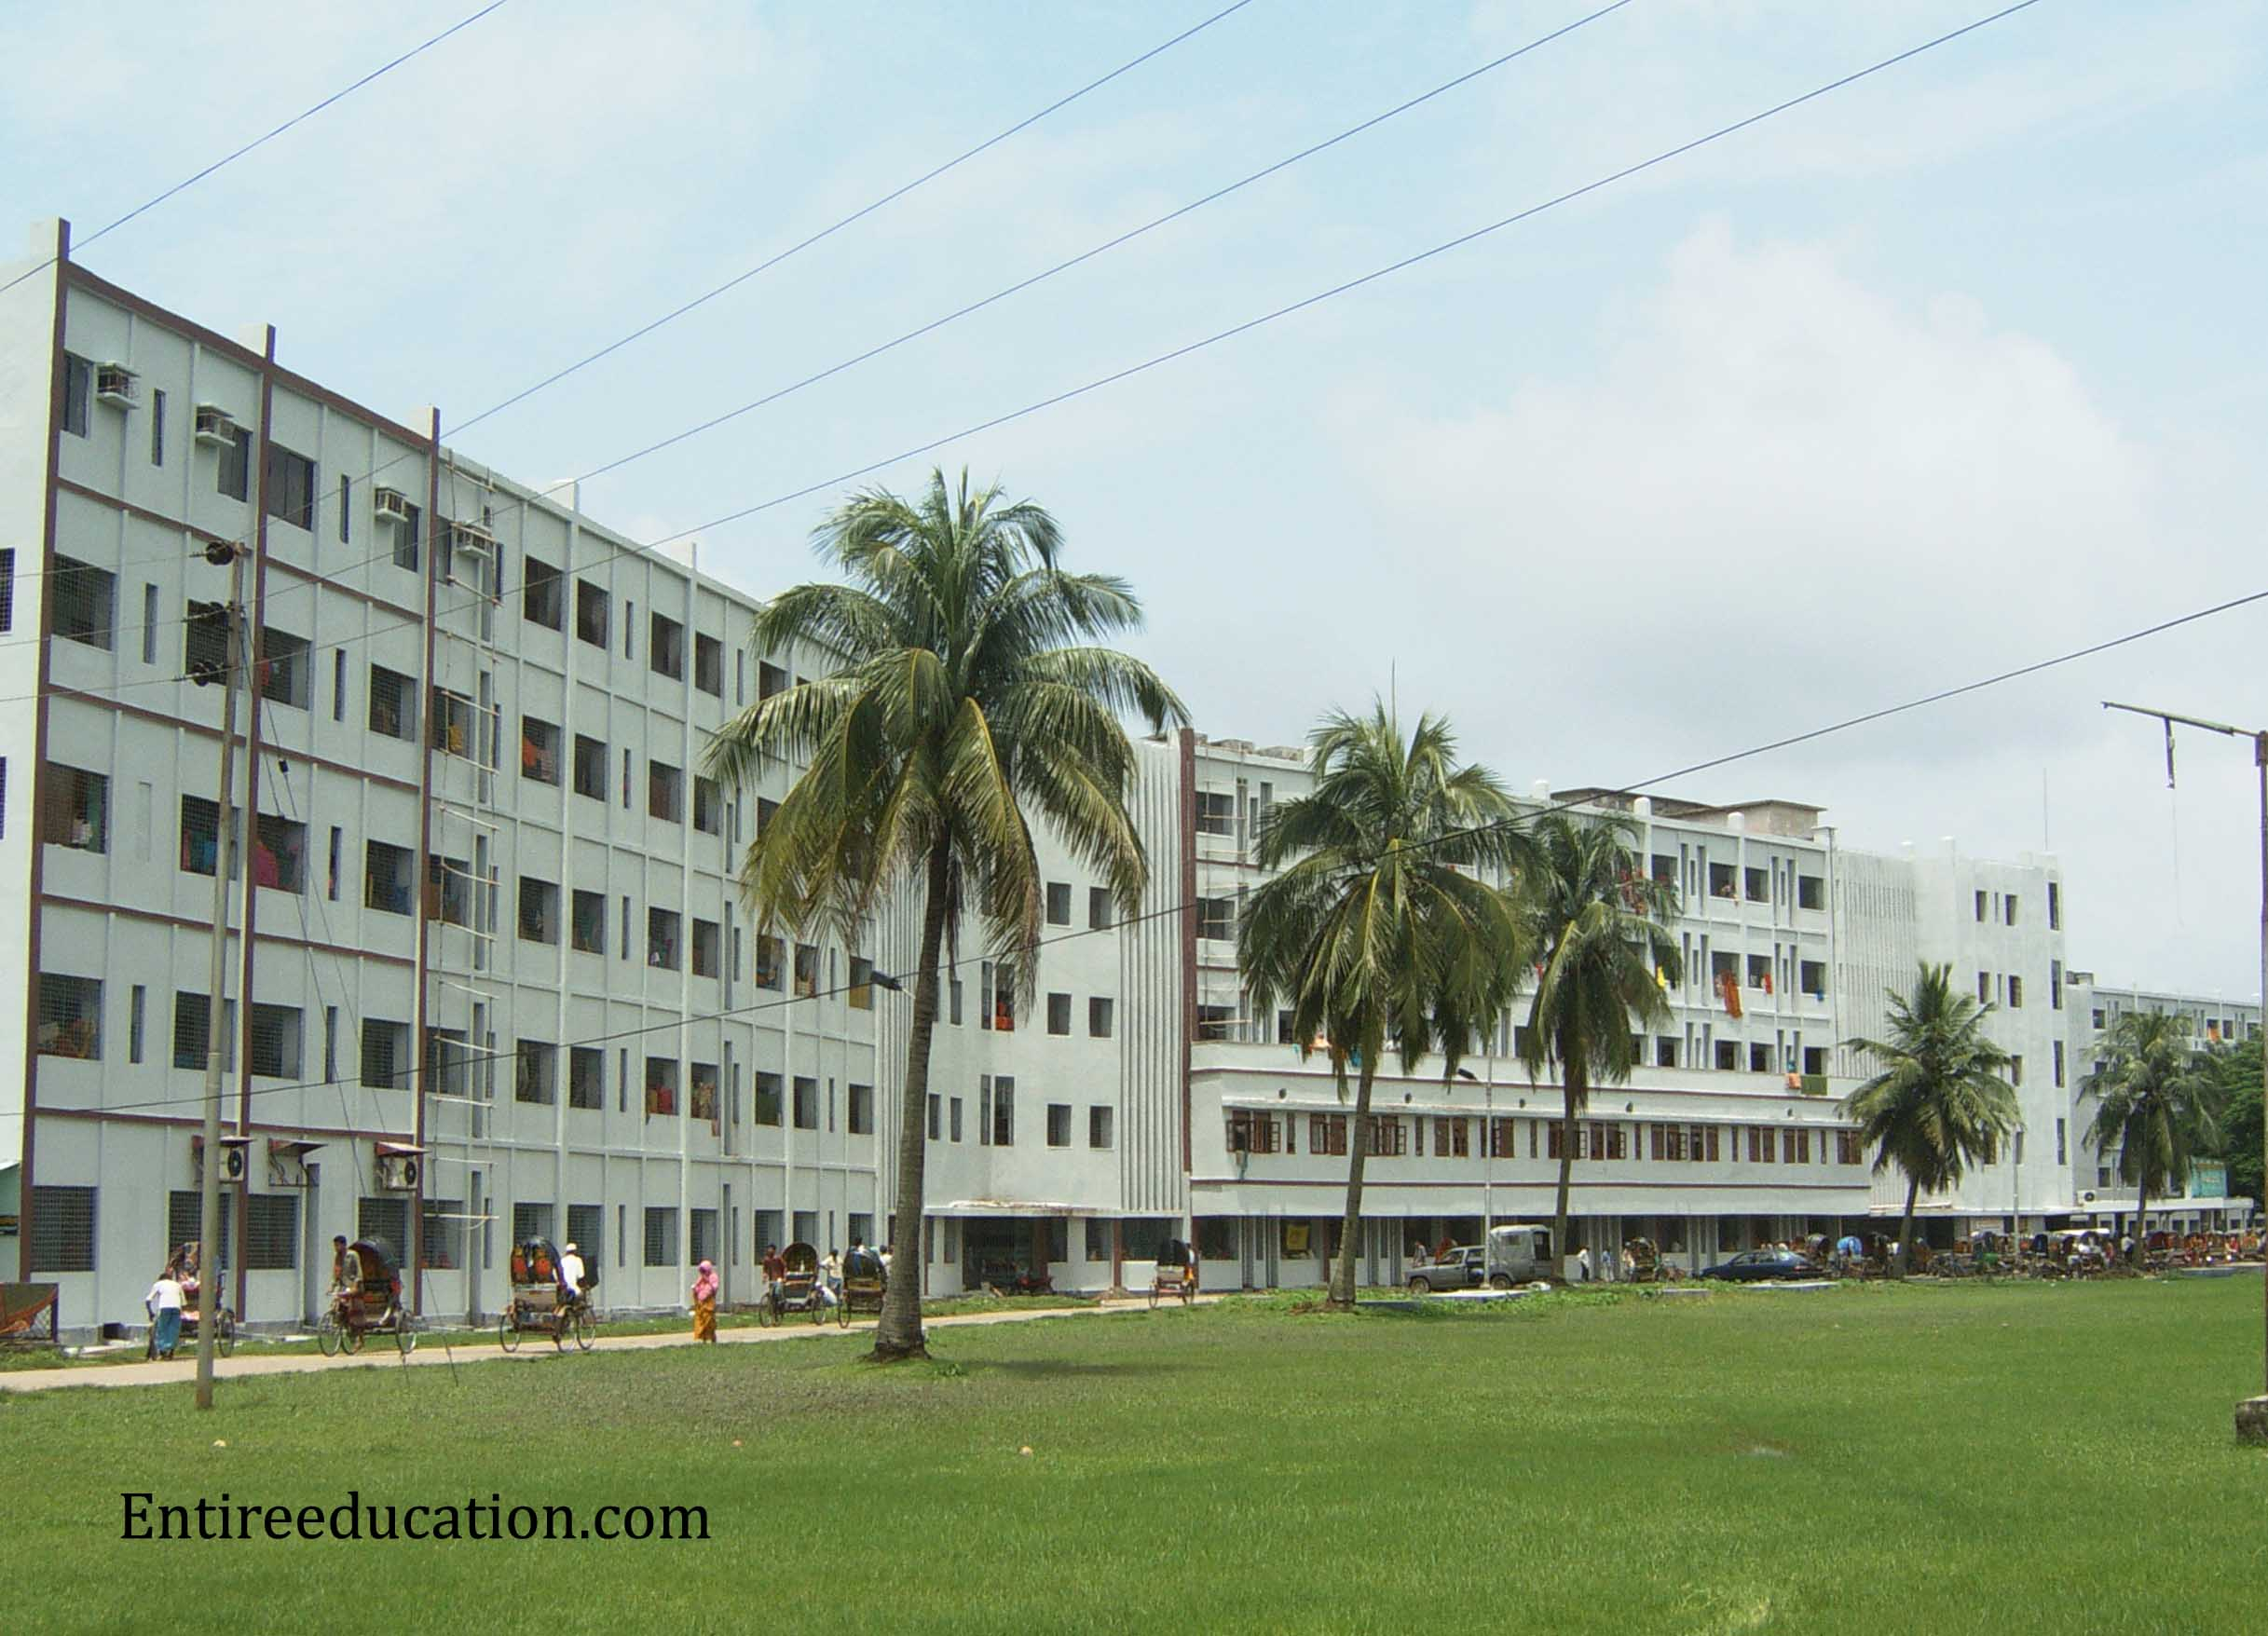 Dinajpur Medical College Admission 2020-21 Last date, Fee